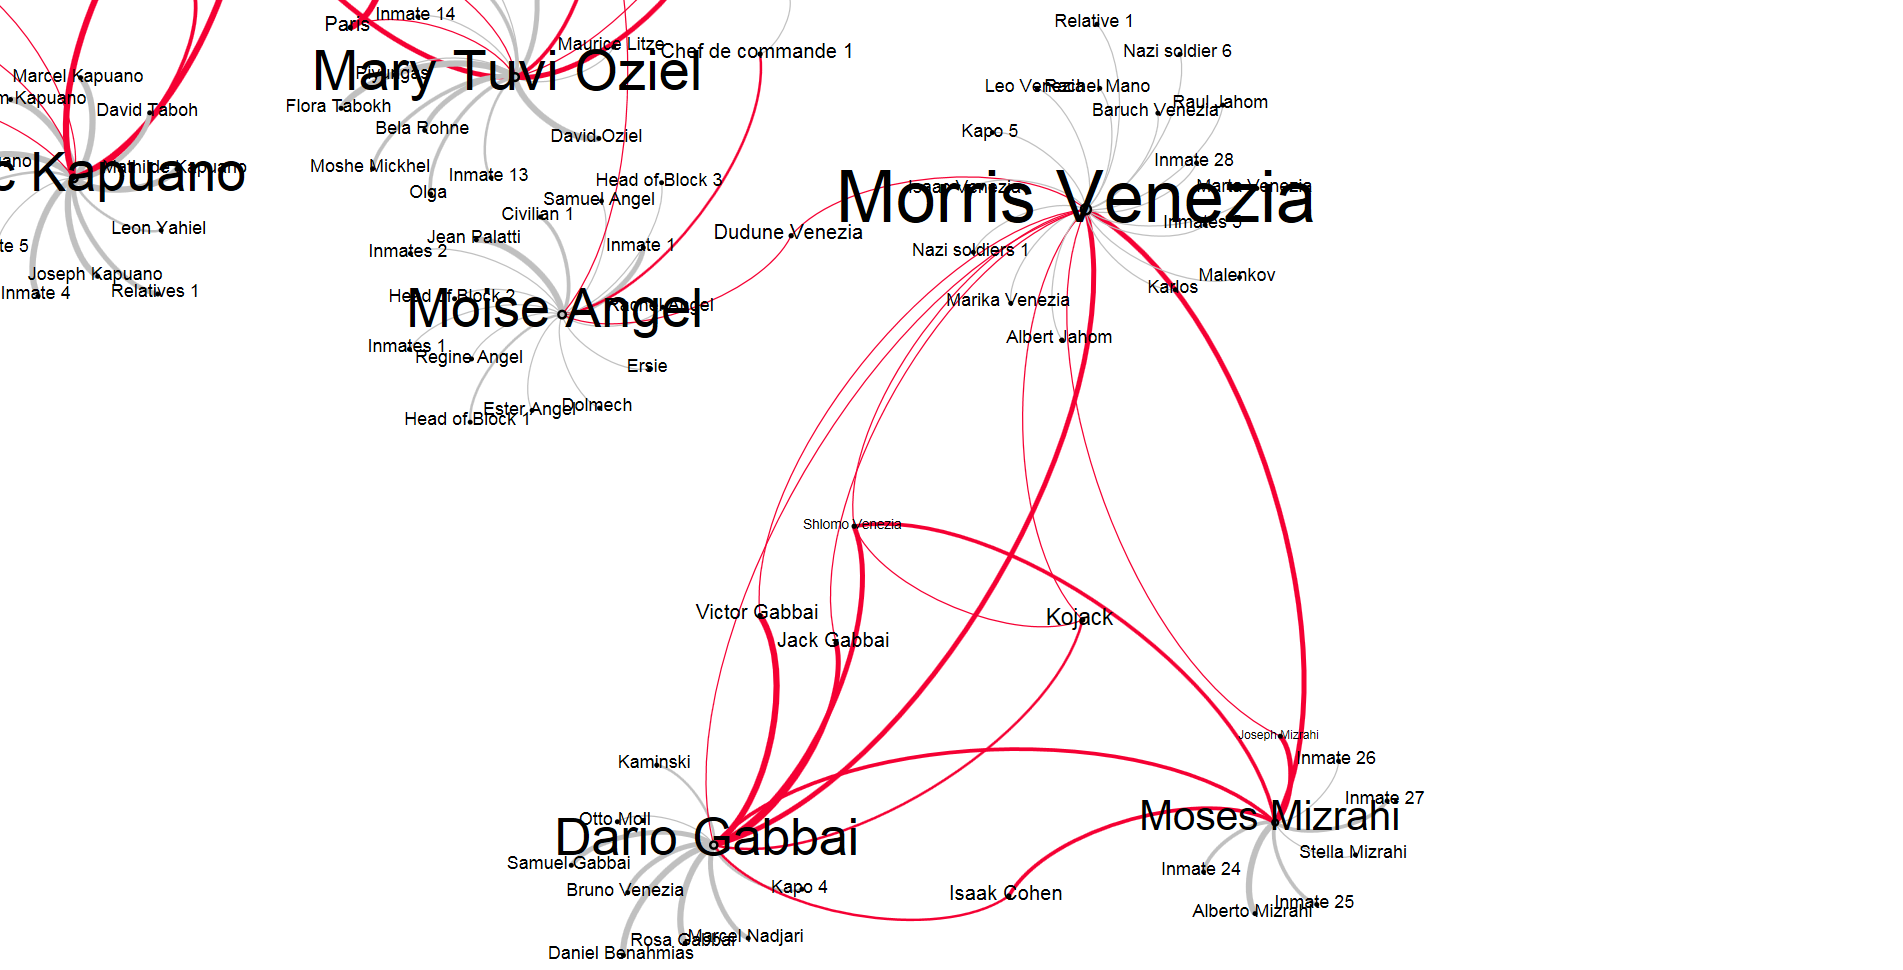 Fig. 7: The network of Morris Venezia, Dario Gabbai, Shlomo Venezia, and Moses Misrah